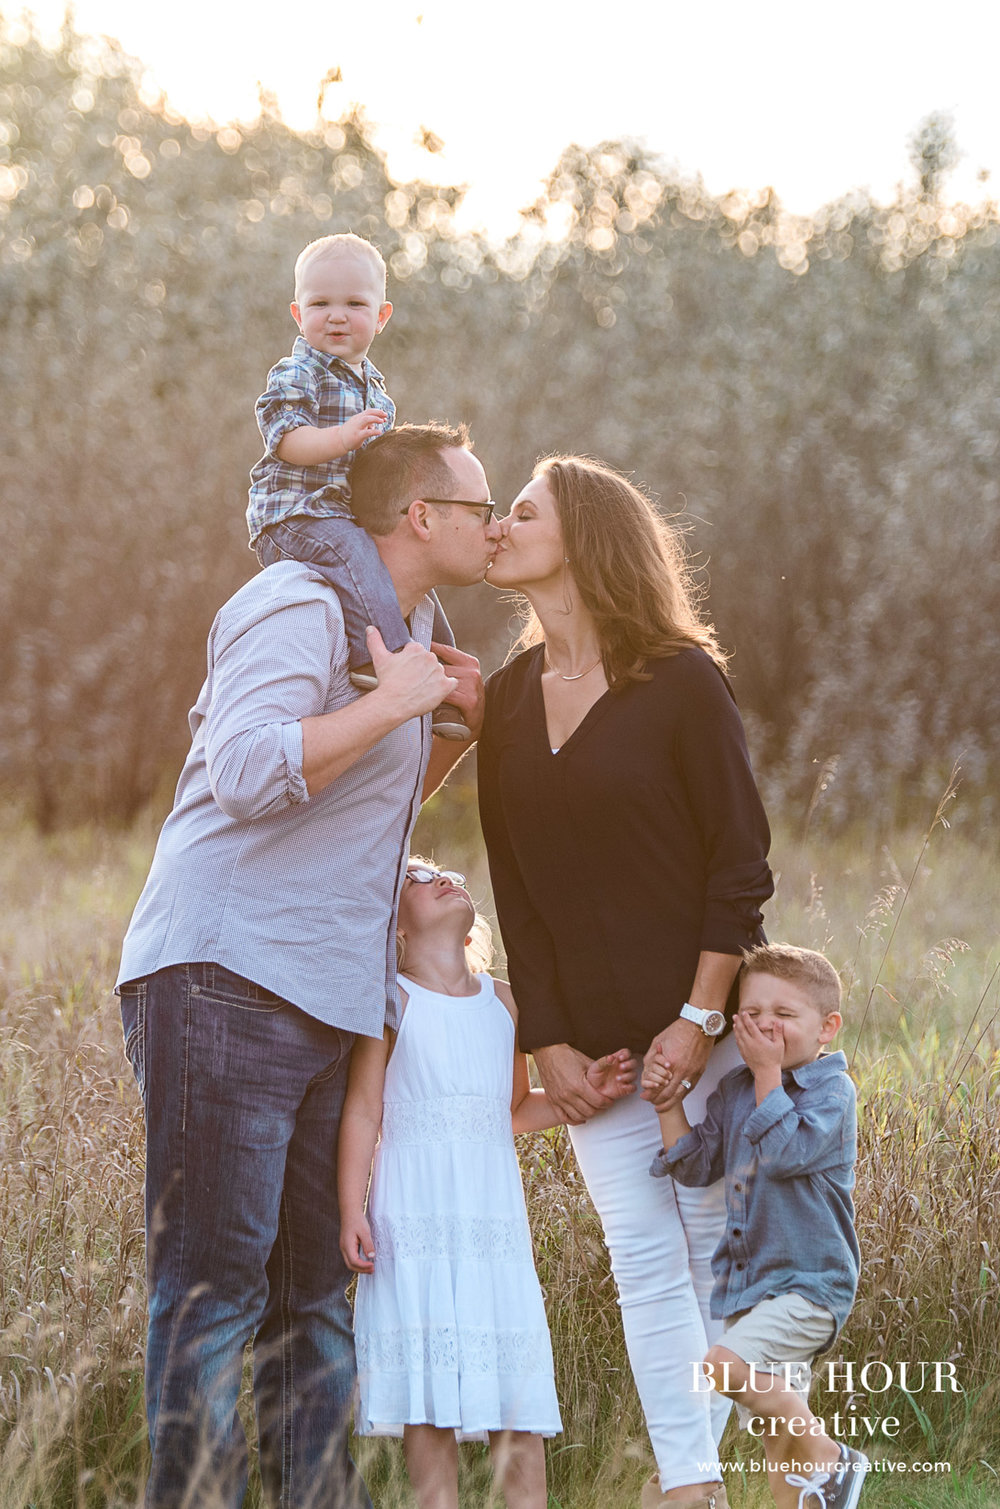 bluehourcreative-family-fun-golden-hour-session-11.jpg